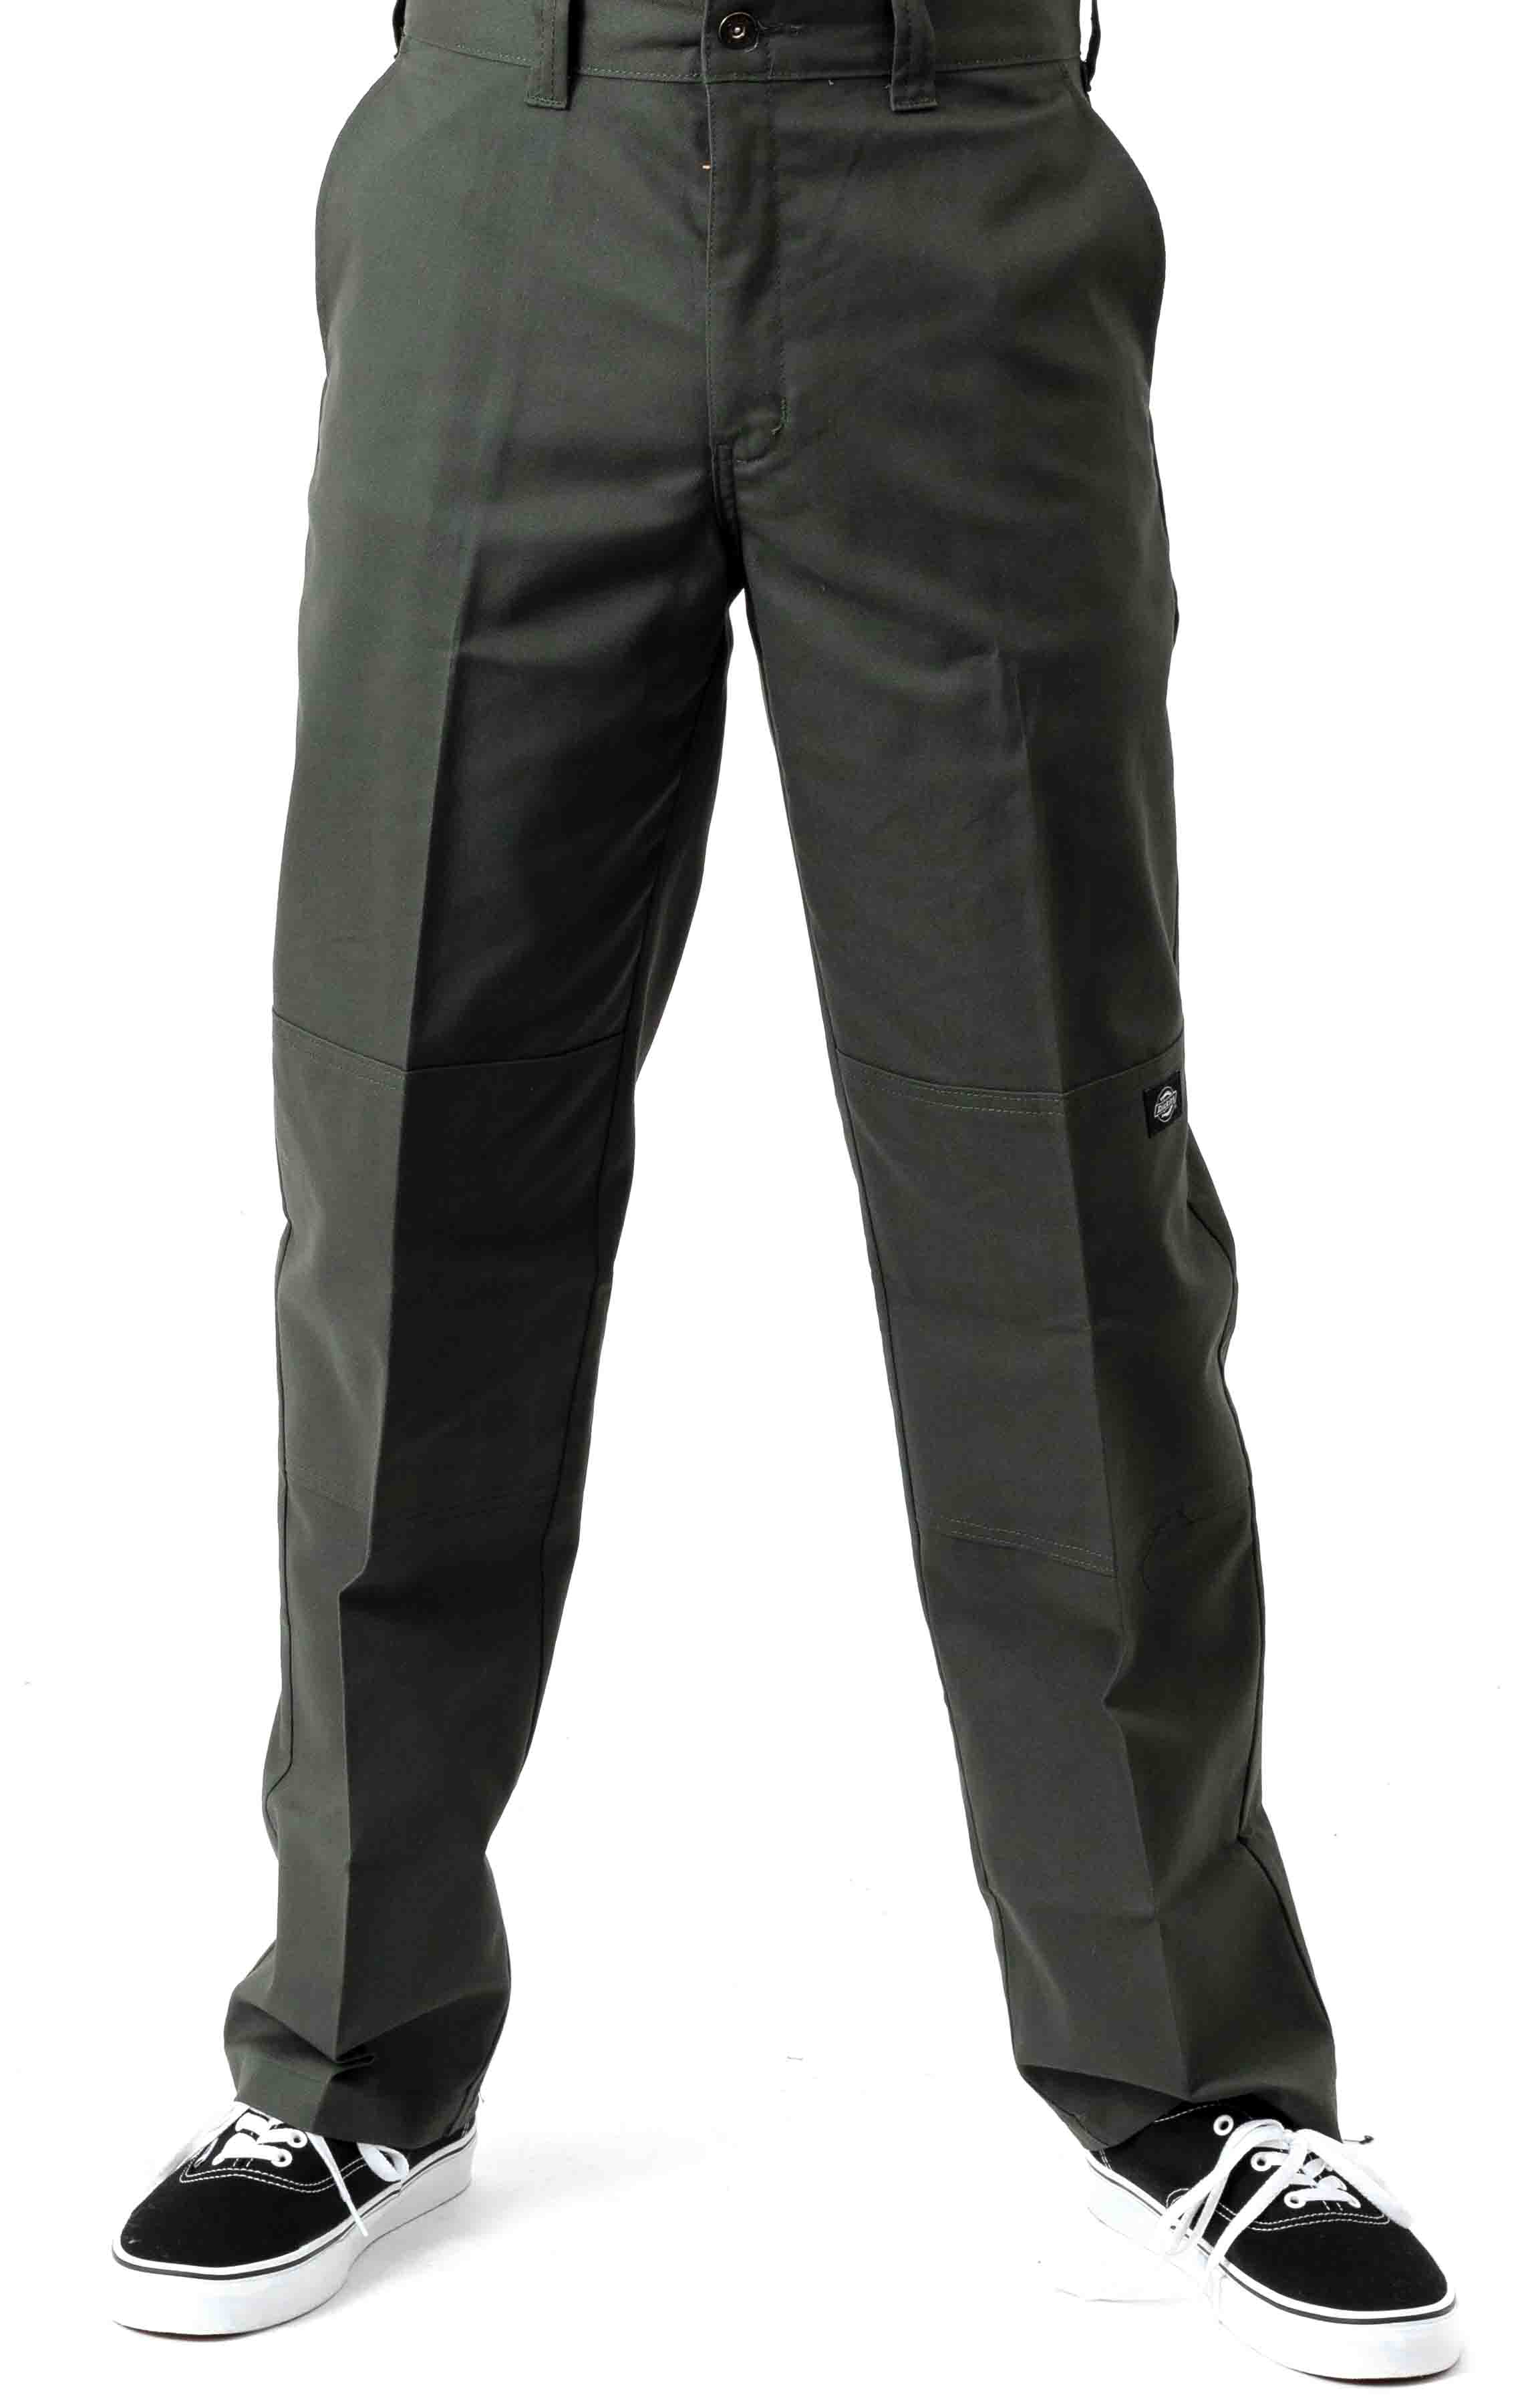 (WP896OG) '67 Regular Fit Double Knee Work Pants - Olive Green